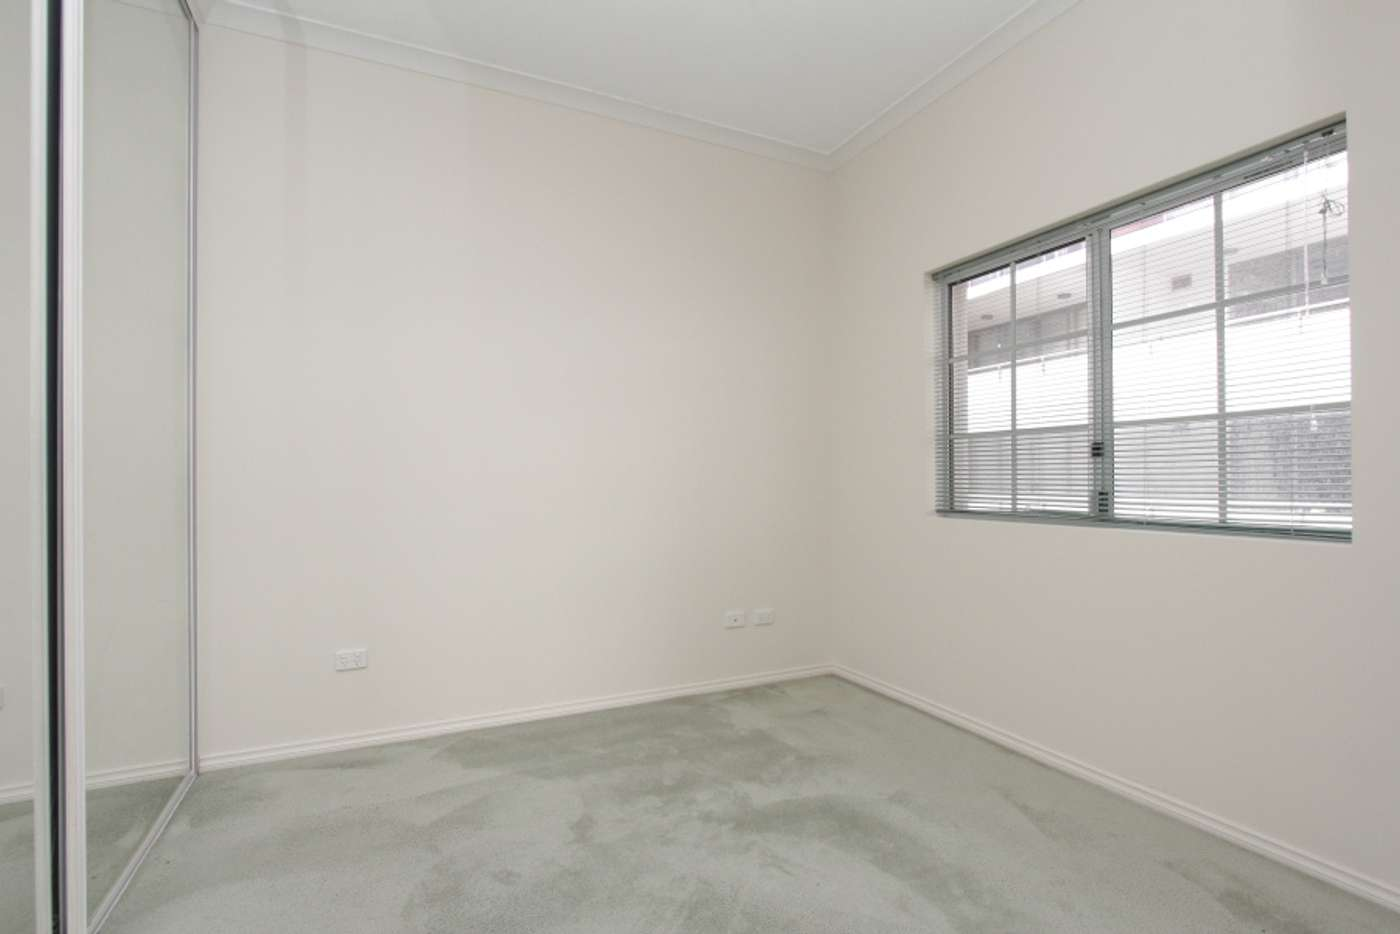 Seventh view of Homely apartment listing, 32/2 Mayfair St, West Perth WA 6005